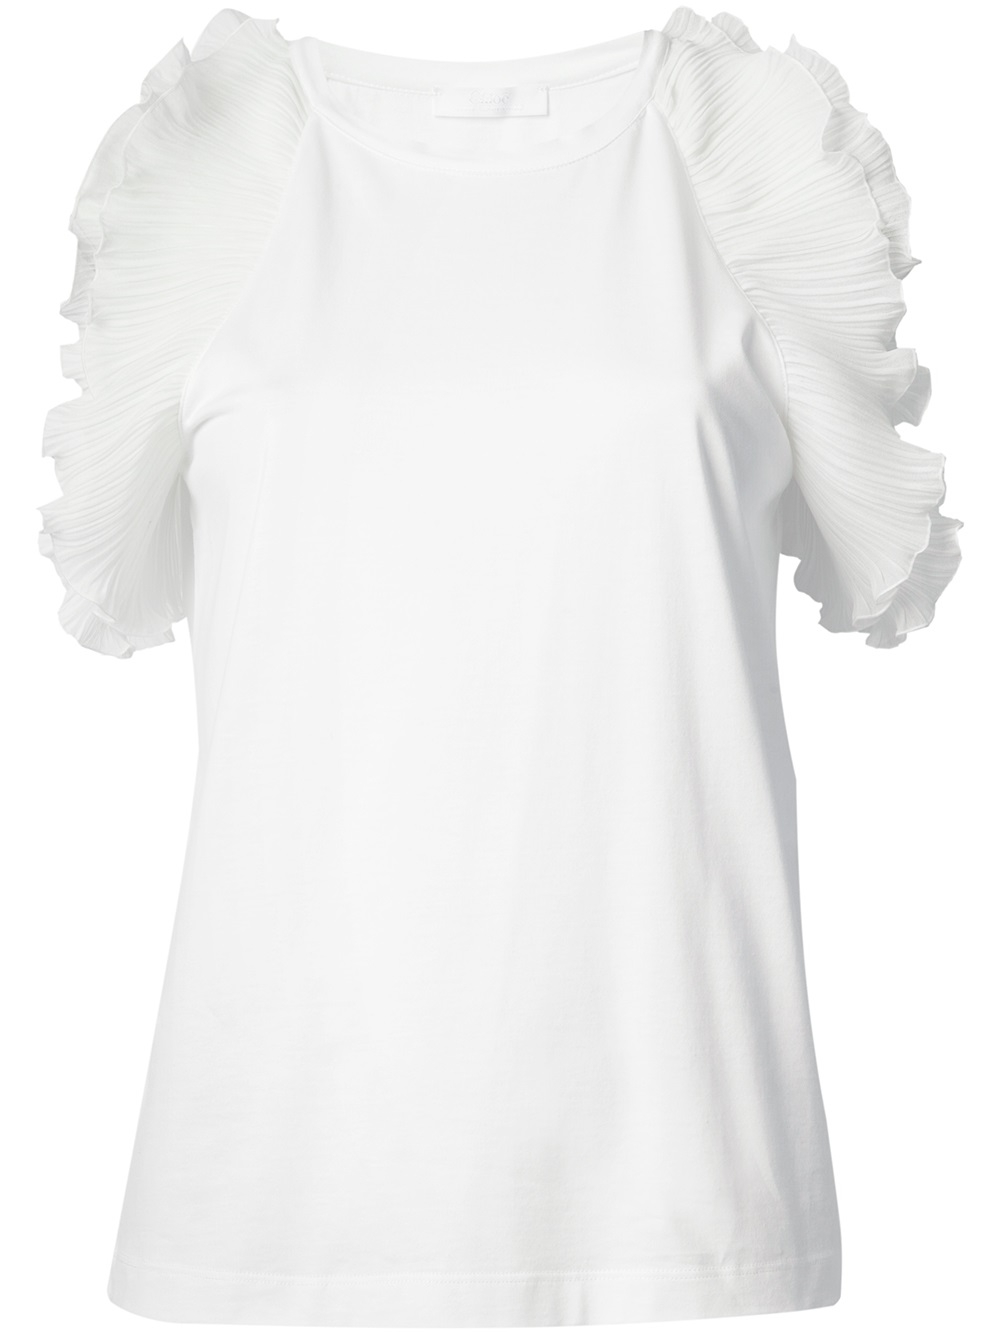 Lyst - Chloé Ruffle Sleeve Top in White 7277b0276